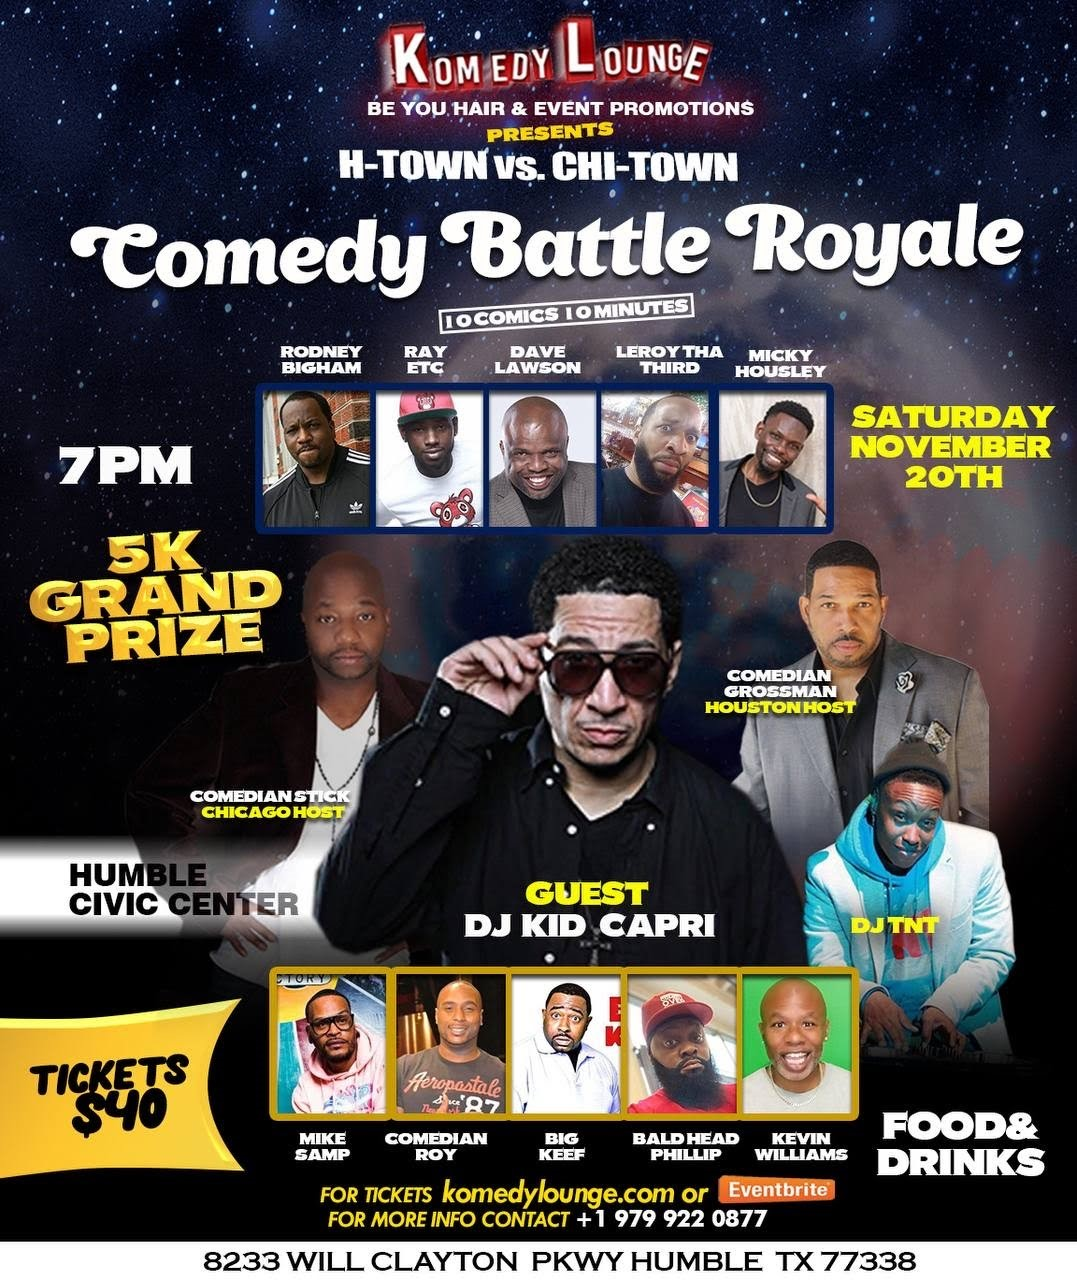 H-Town vs Chi-Town Men Comedy Battle Royale  on Nov 20, 21:00@Humble Civic Center - Buy tickets and Get information on komedylounge.com